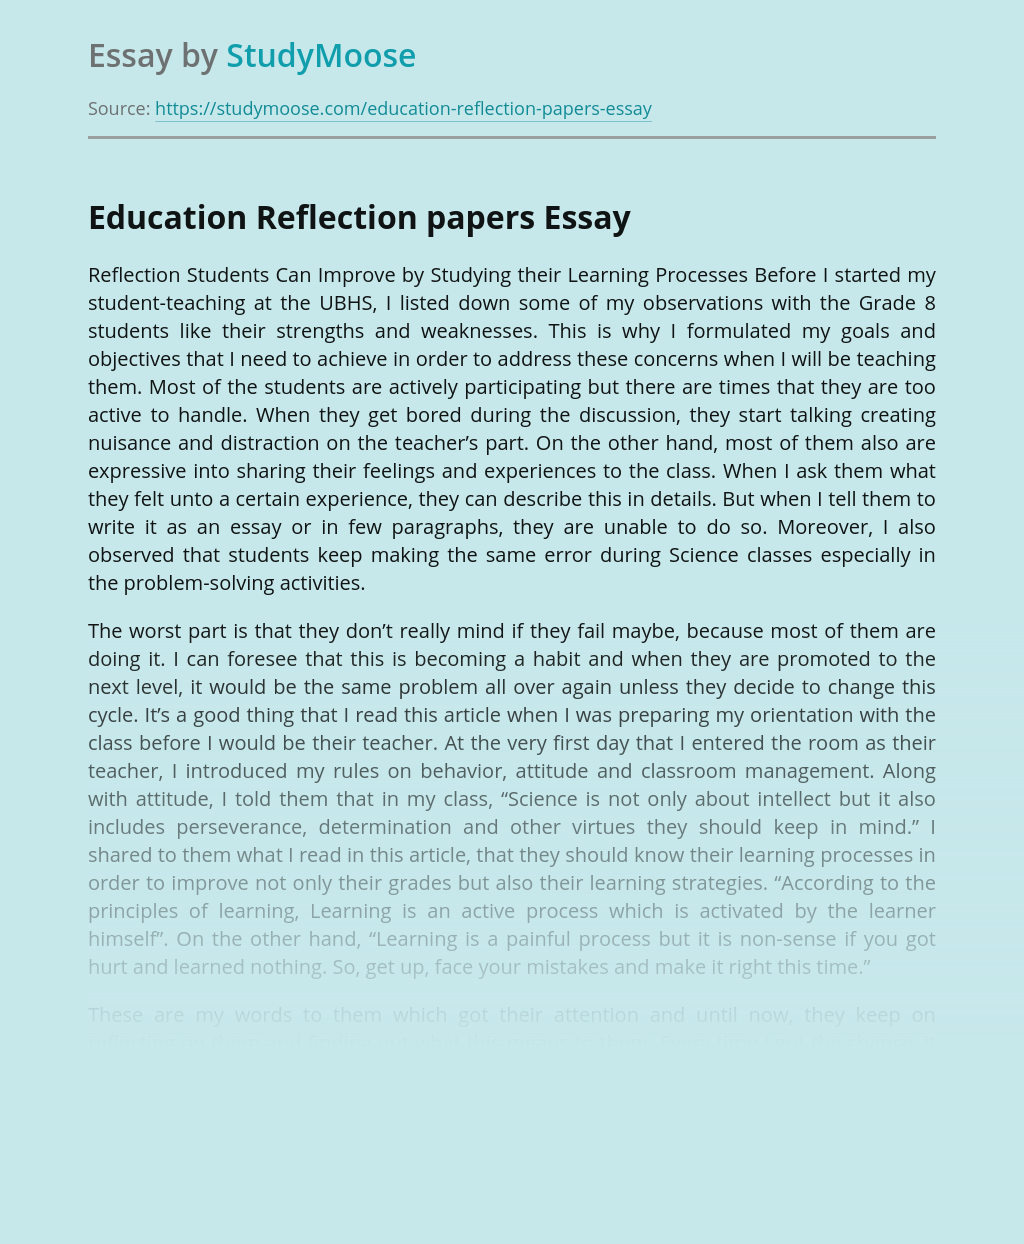 Education Reflection papers